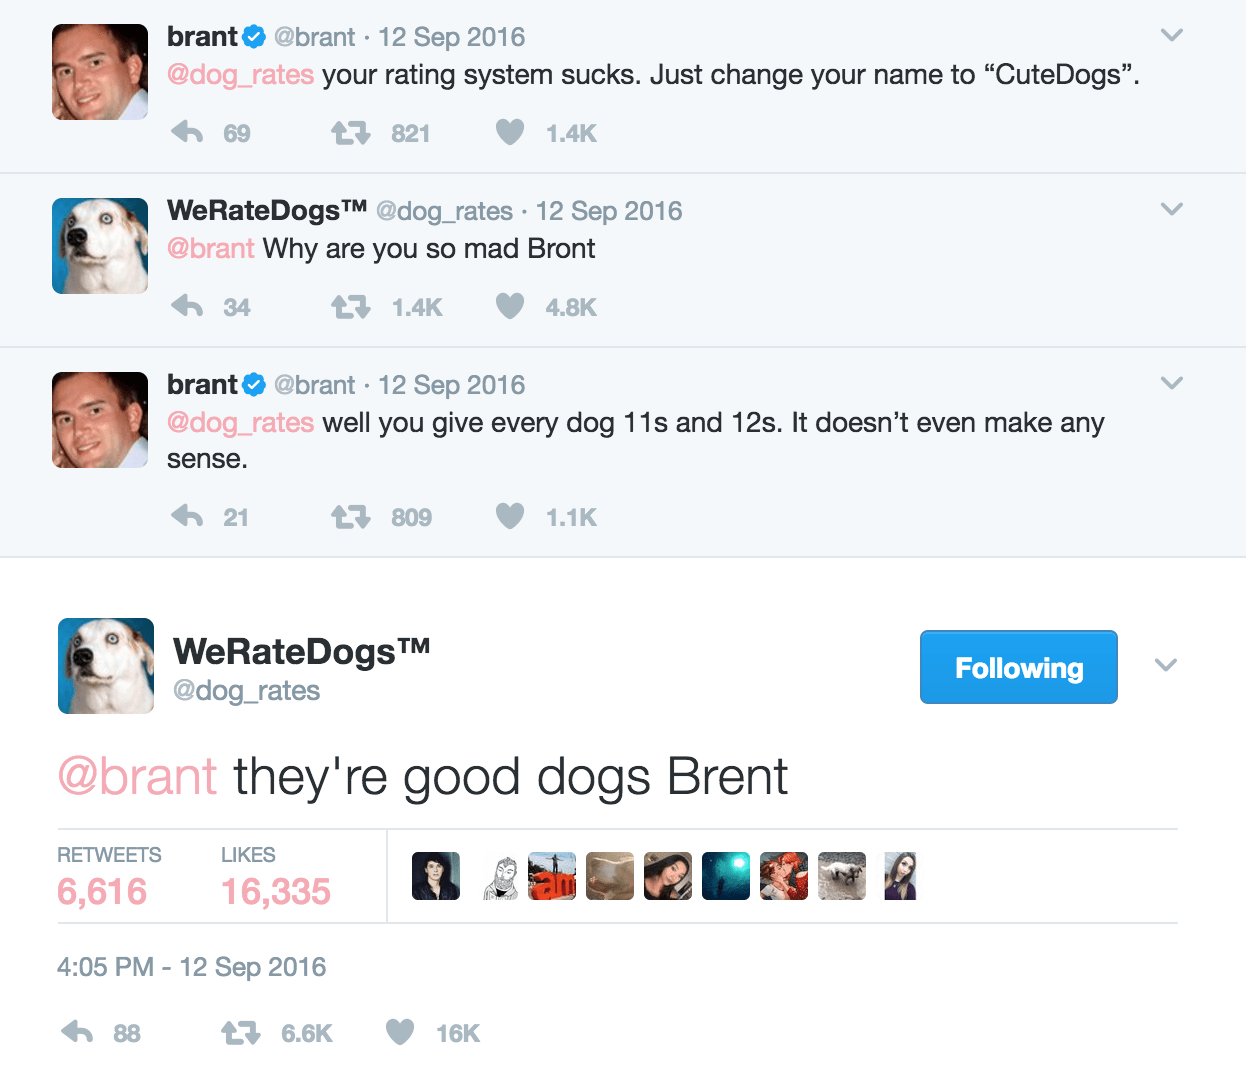 They Re Good Dogs Exchange